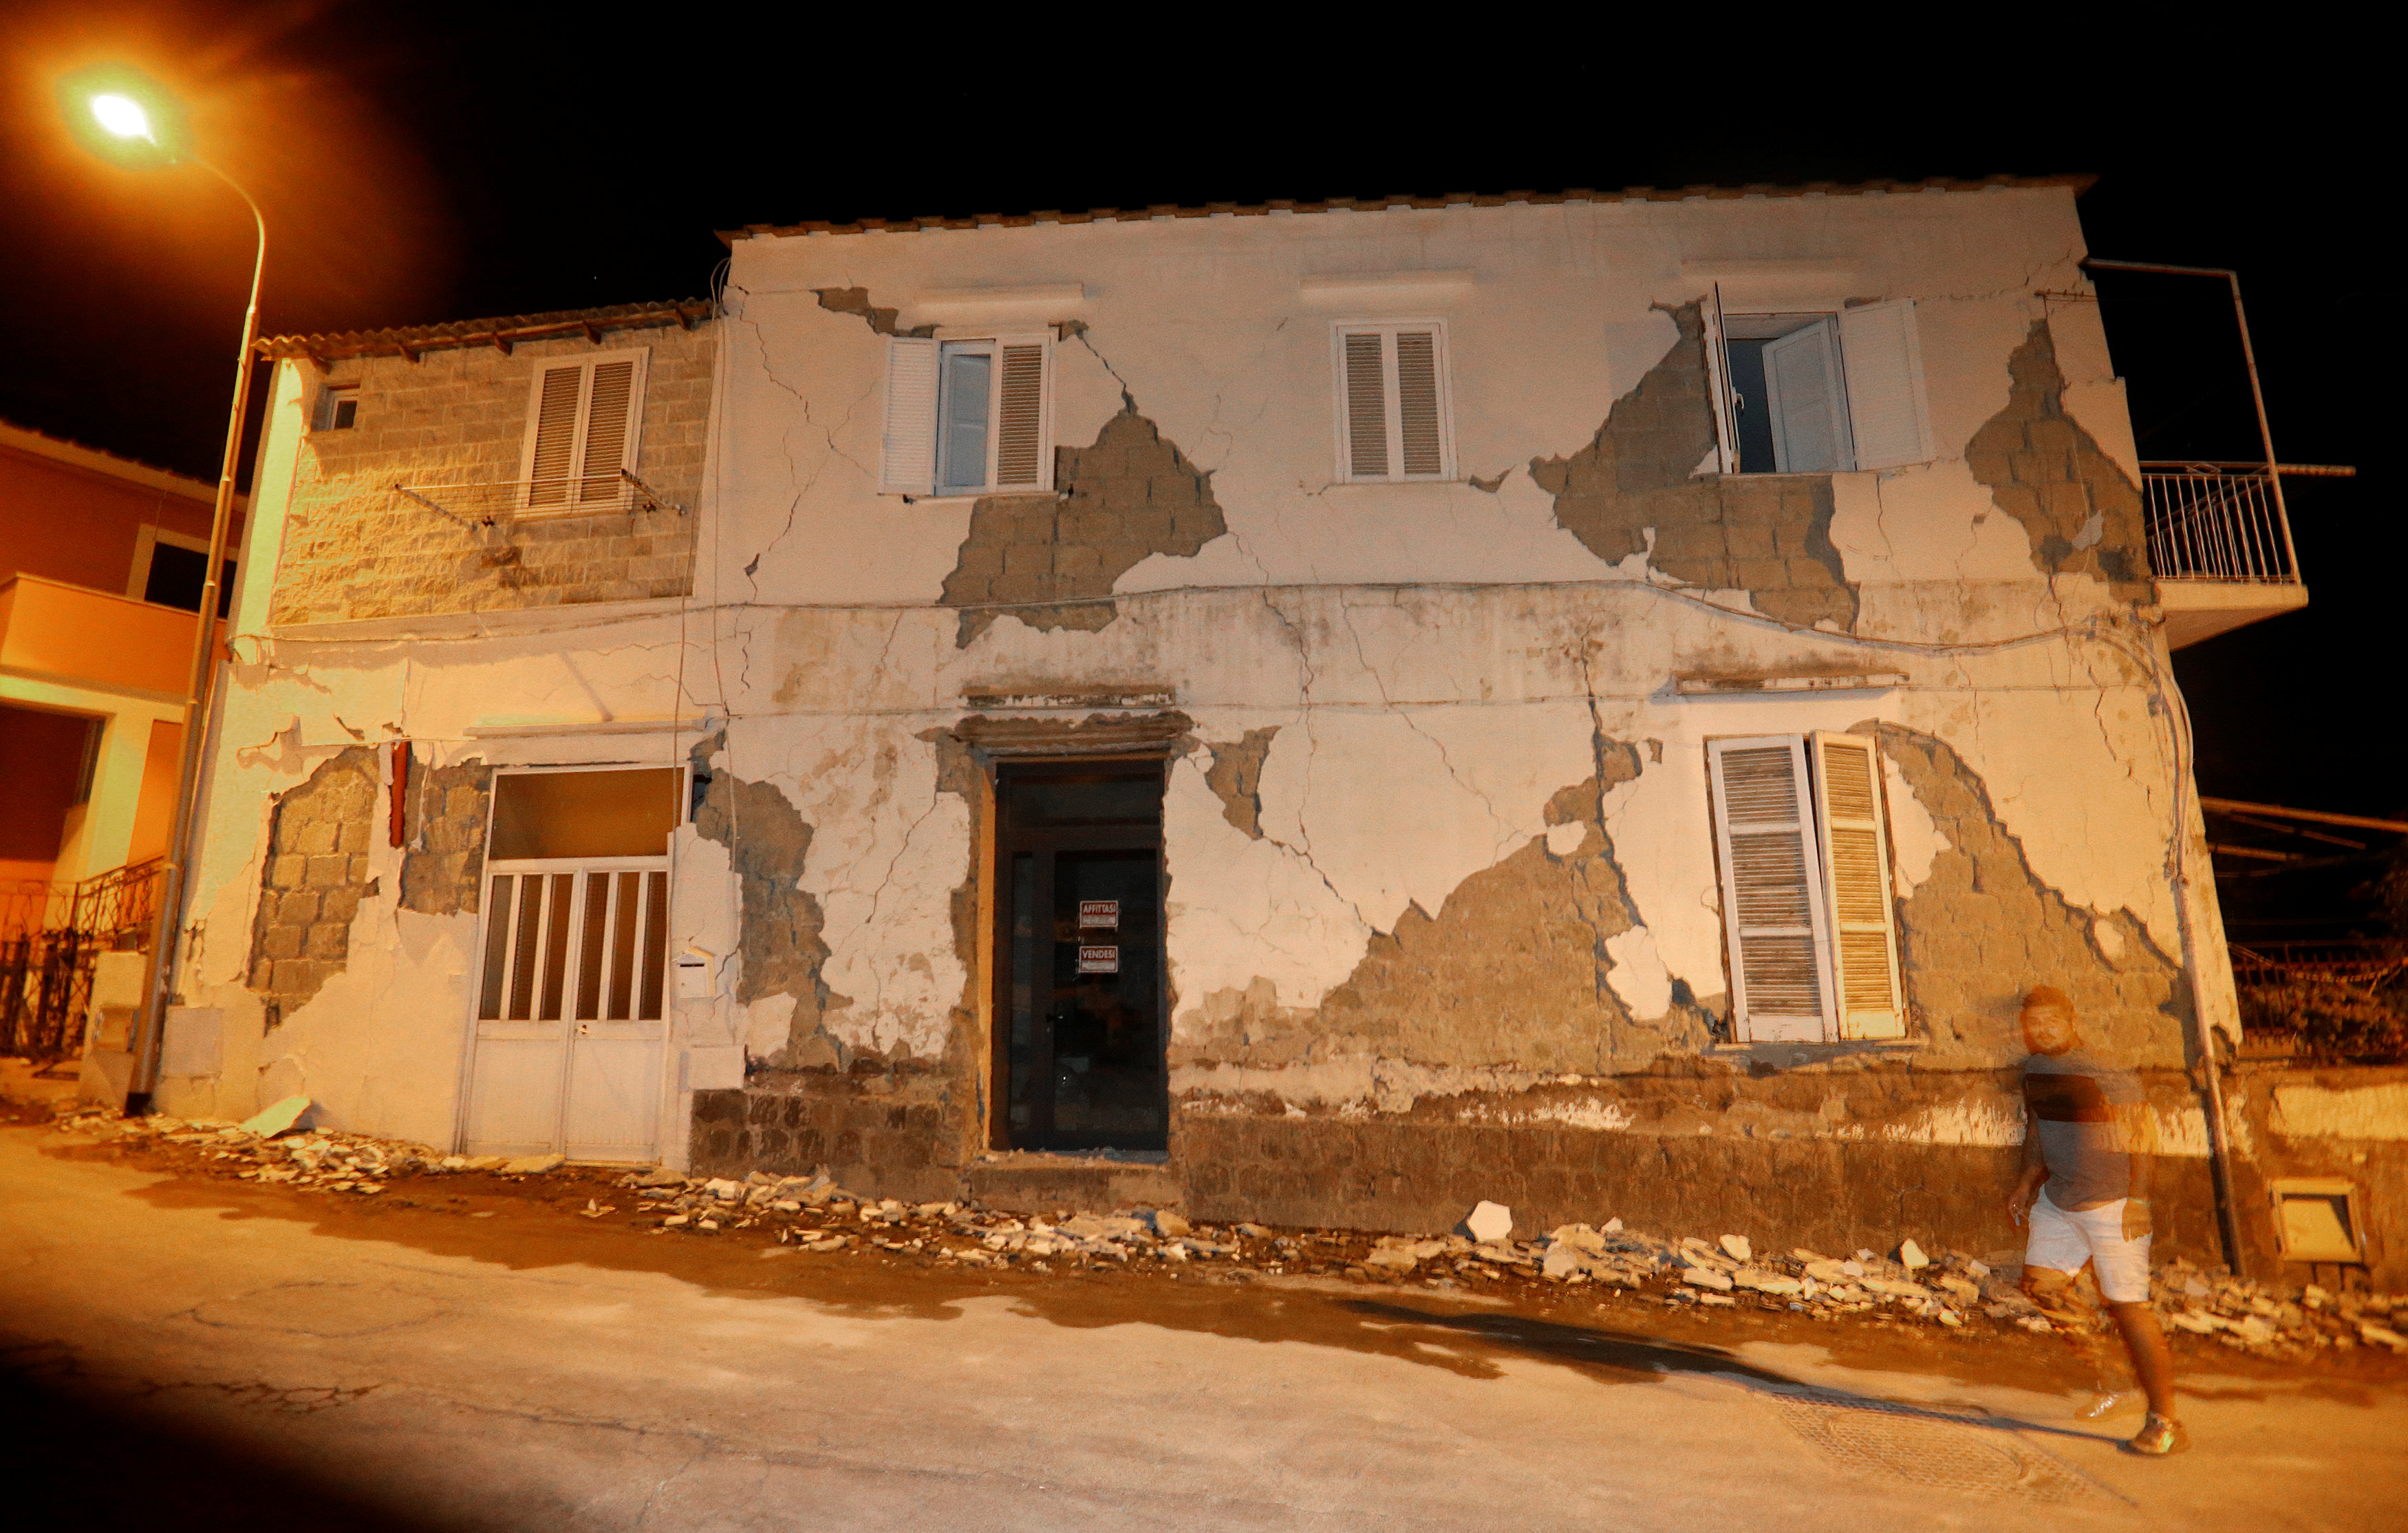 A damaged house is seen after an earthquake hit the island of Ischia, off the coast of Naples, Italy on August 22, 2017. (REUTERS/Ciro De Luca)